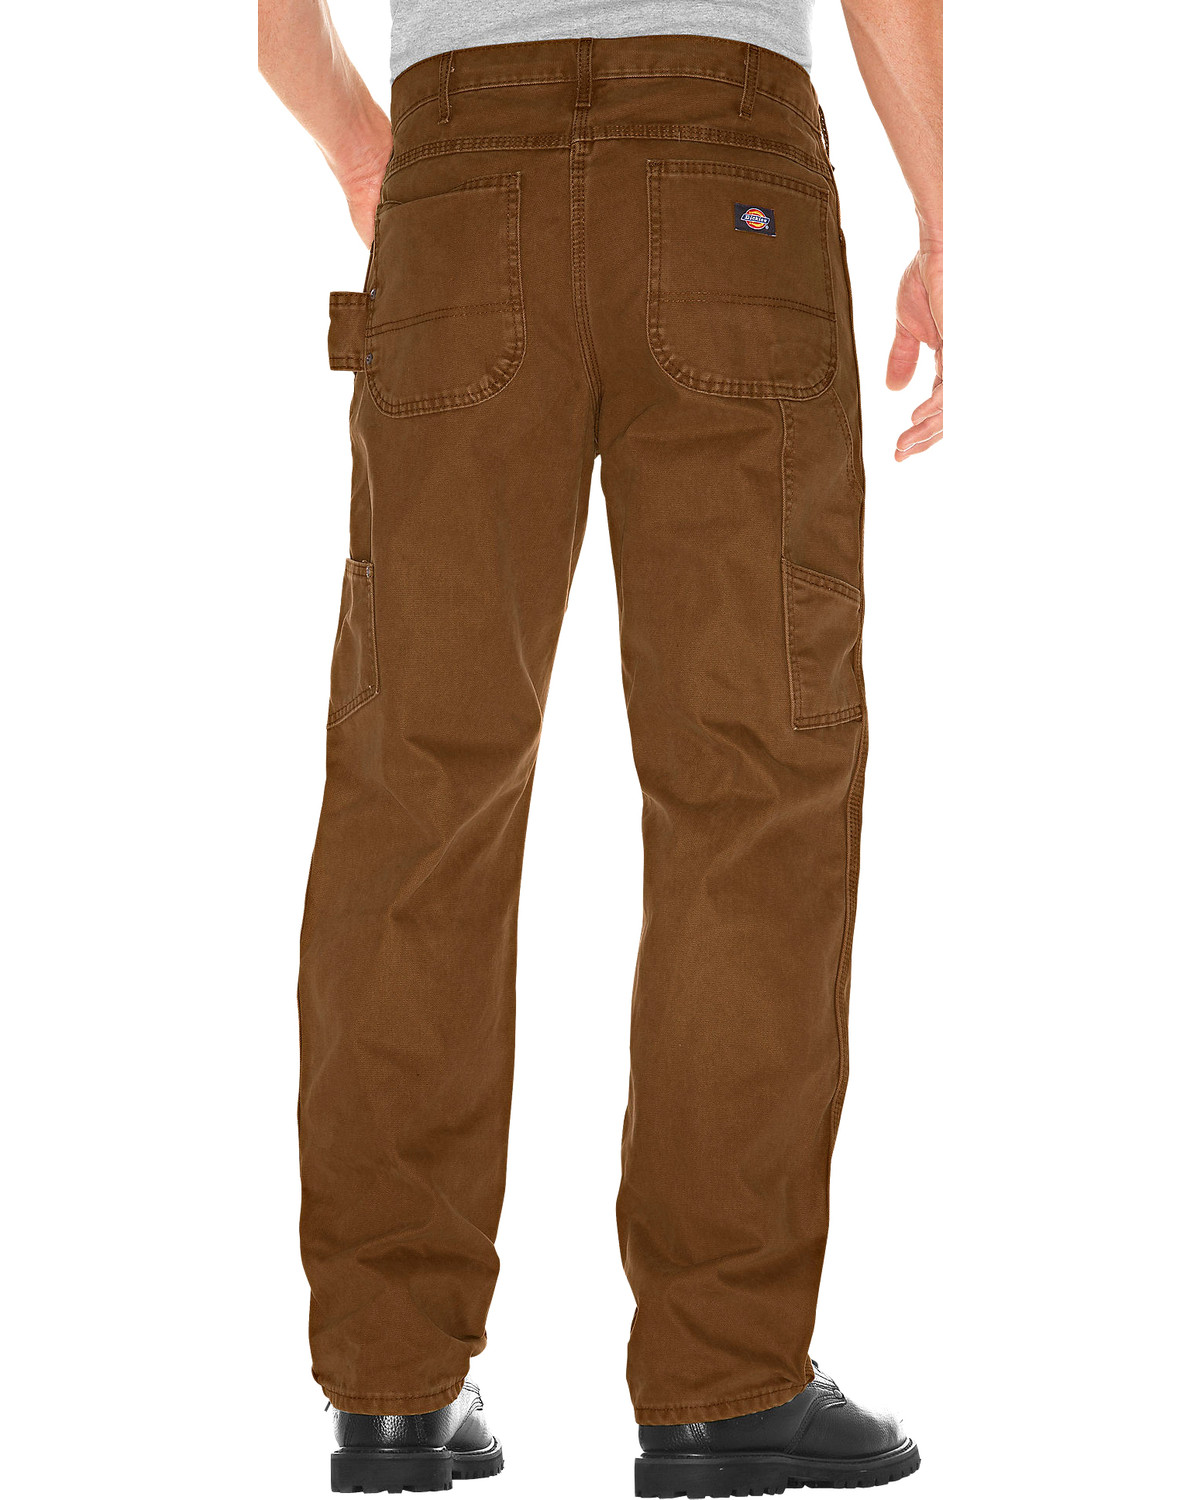 6dcdc6f8a41e0b Zoomed Image Dickies Men's Relaxed Fit Double Front Duck Carpenter Pants,  Bark, ...